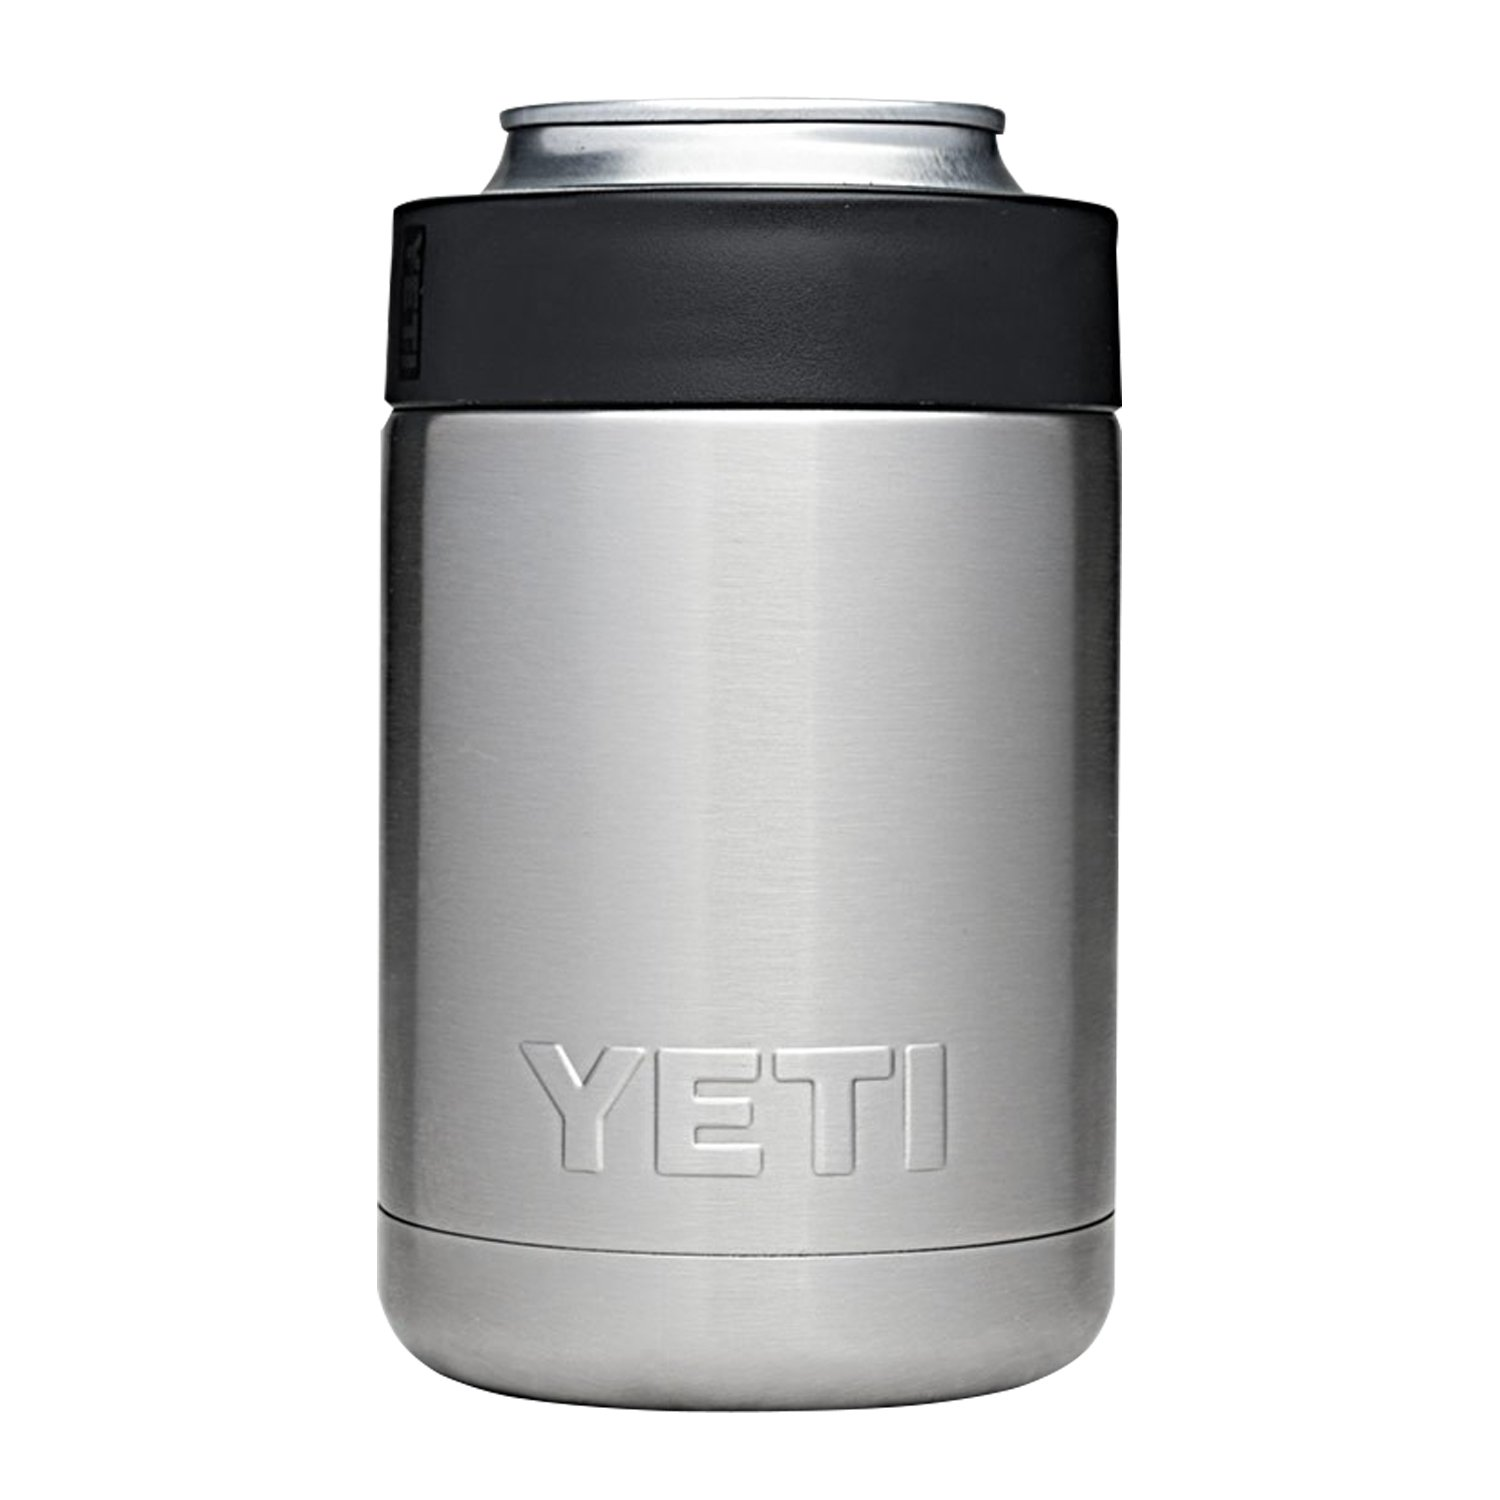 YETI Rambler Colster Can and Bottle Holder Silver One Size by YETI (Image #1)